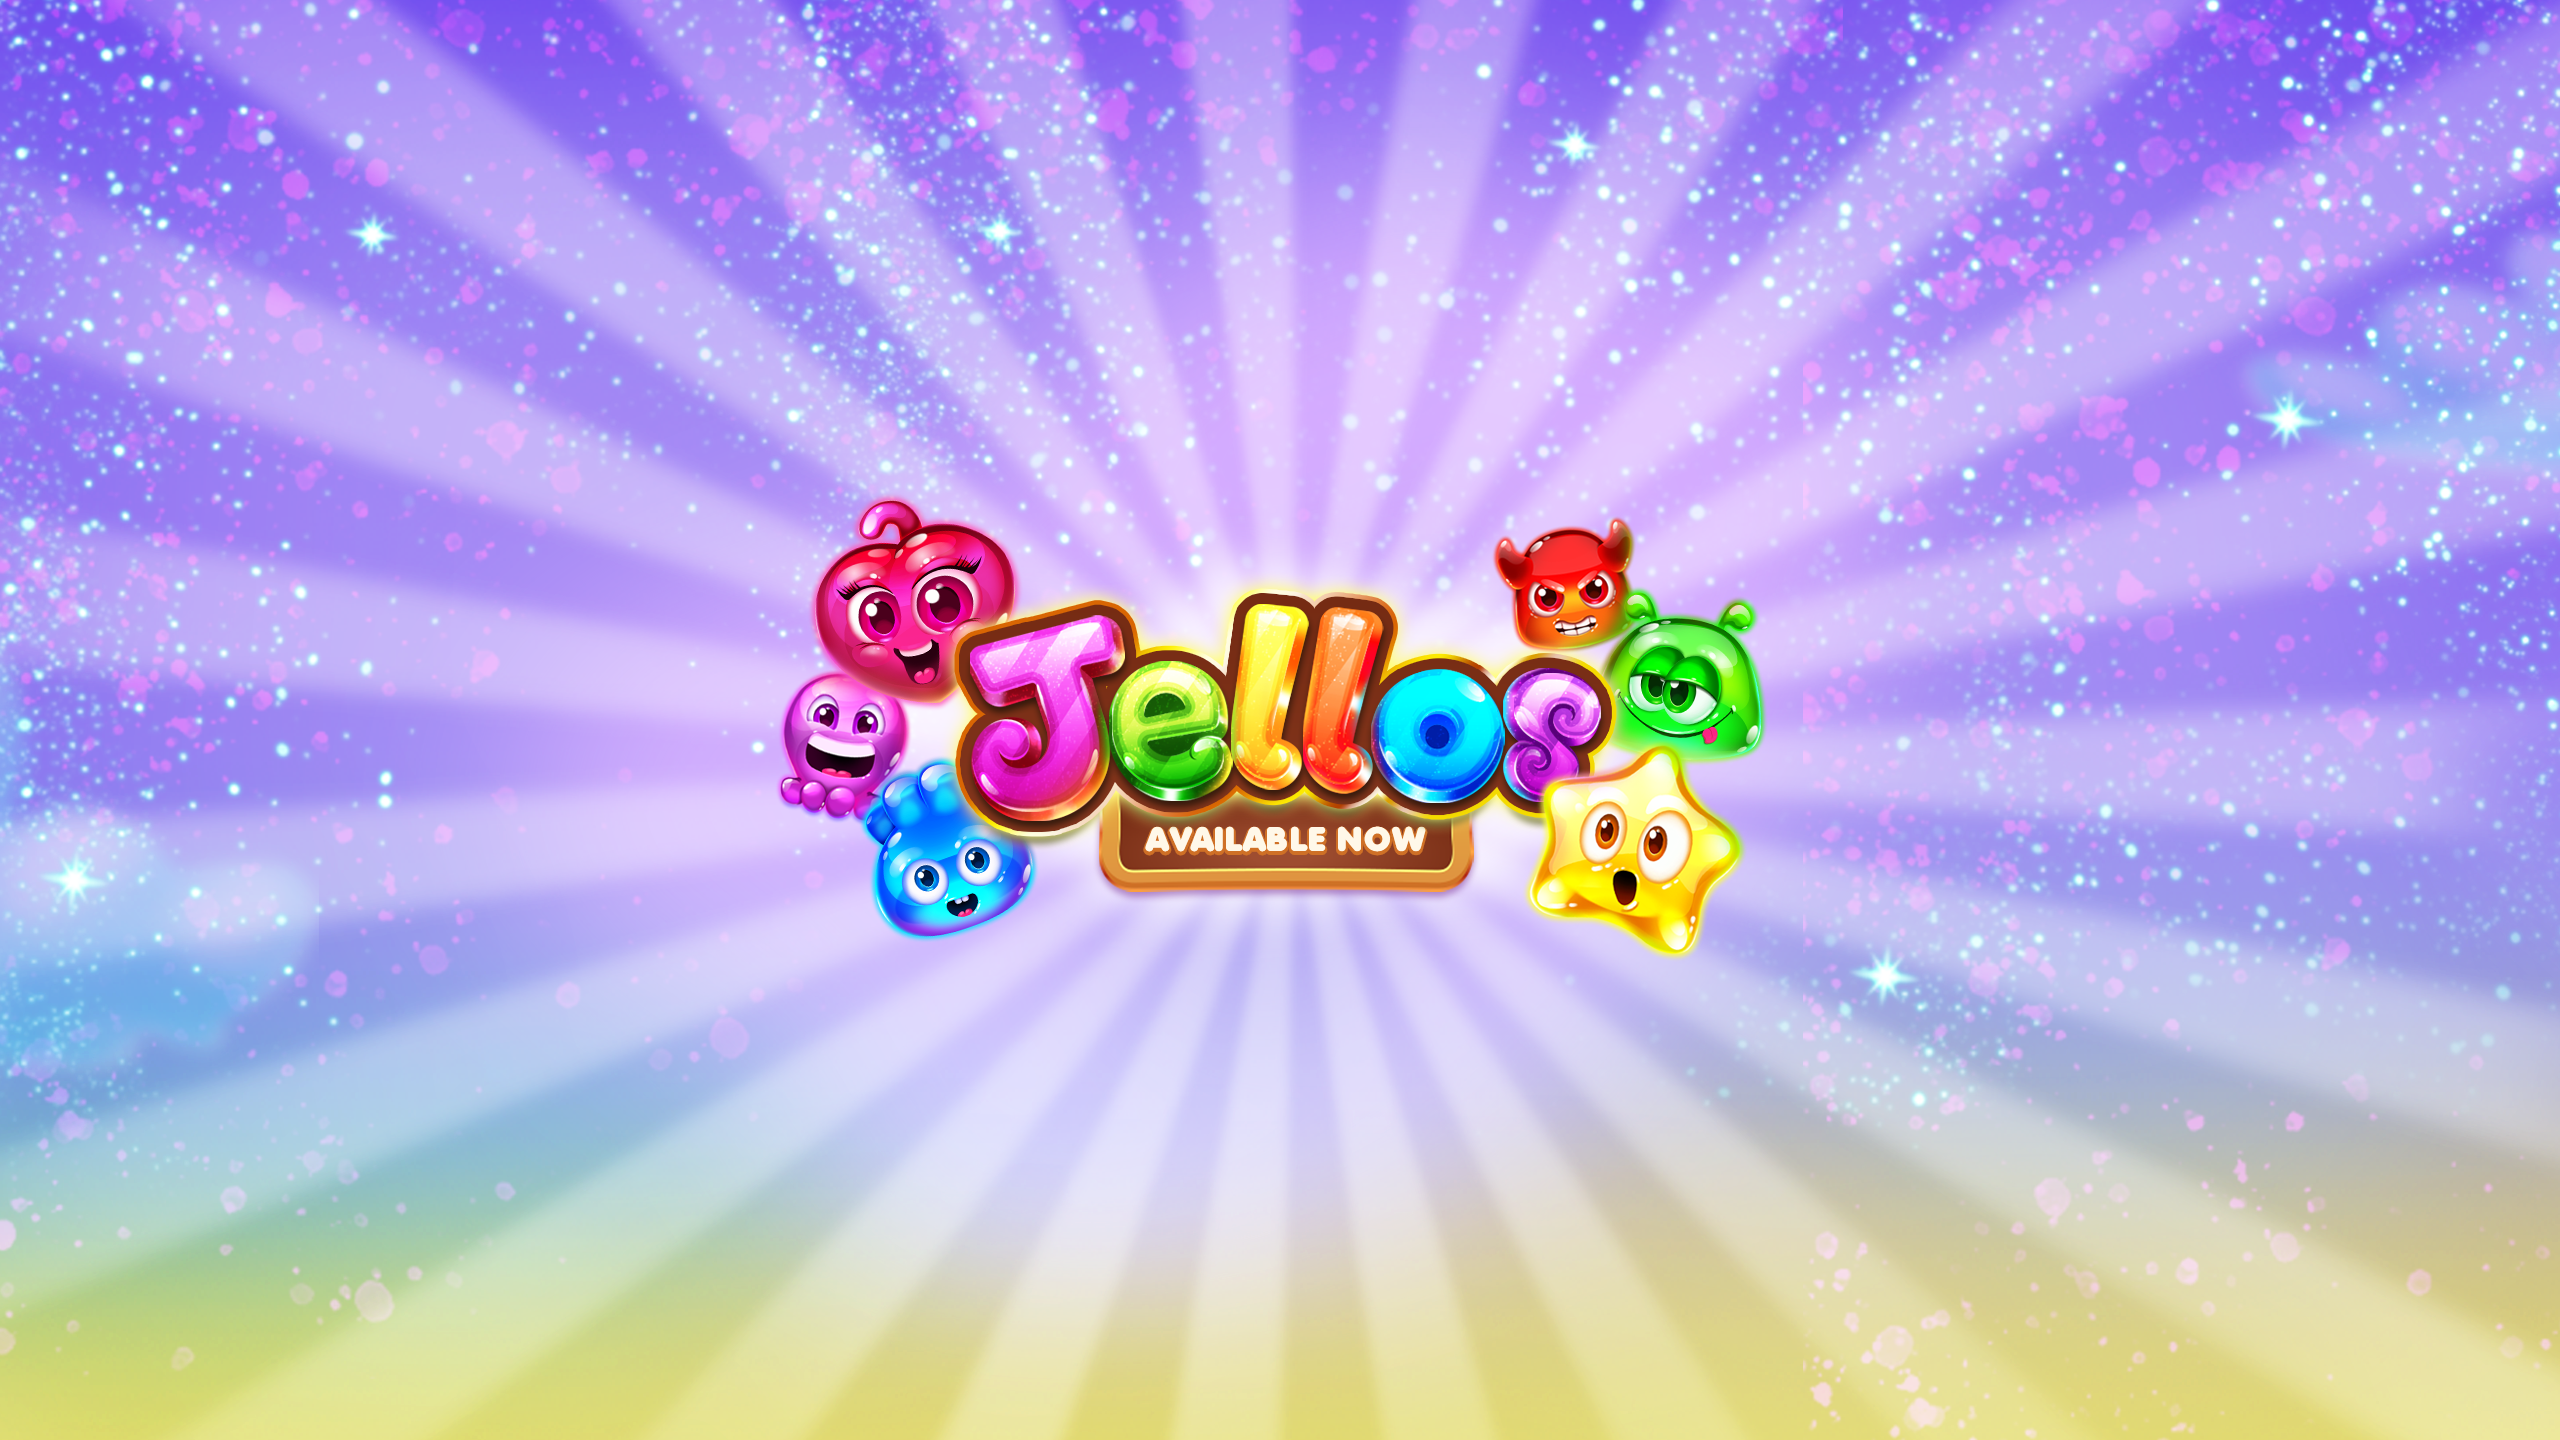 How sweet! It's Jellos time!